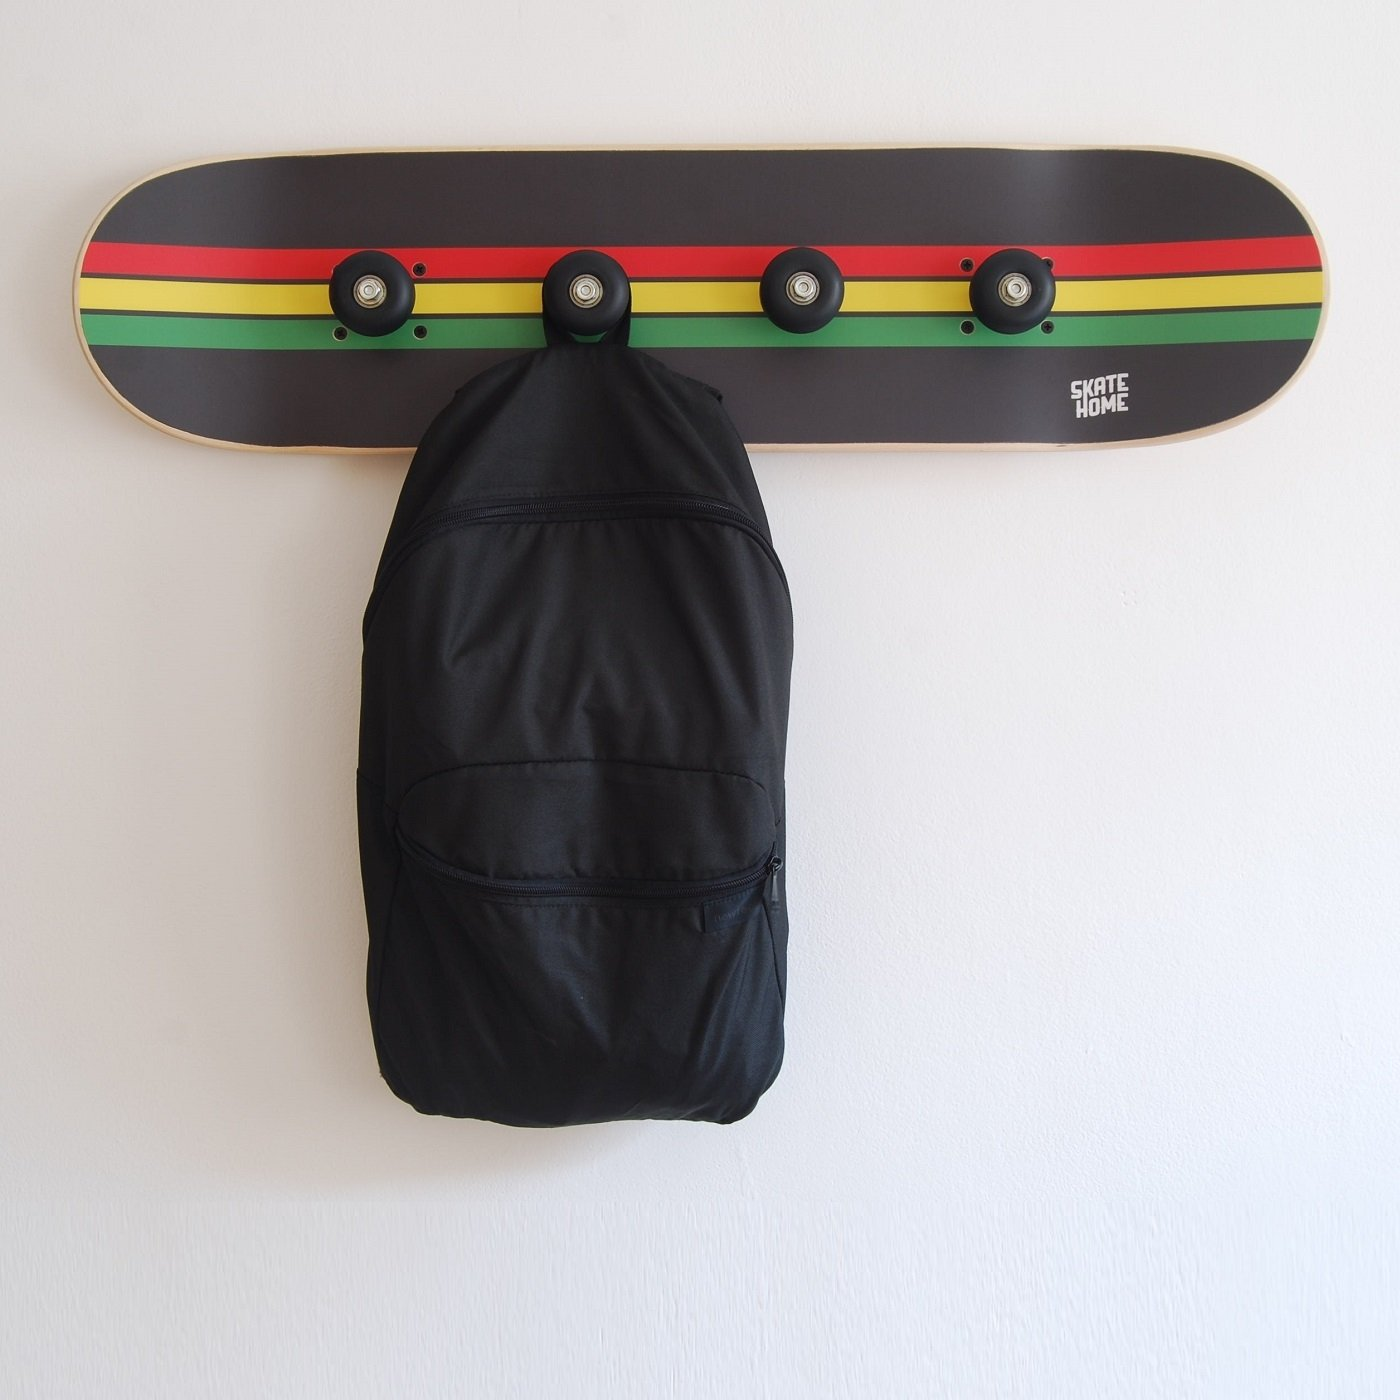 Skateboard bearings on Skate deck coat rack - Decoration boys room - Rasta